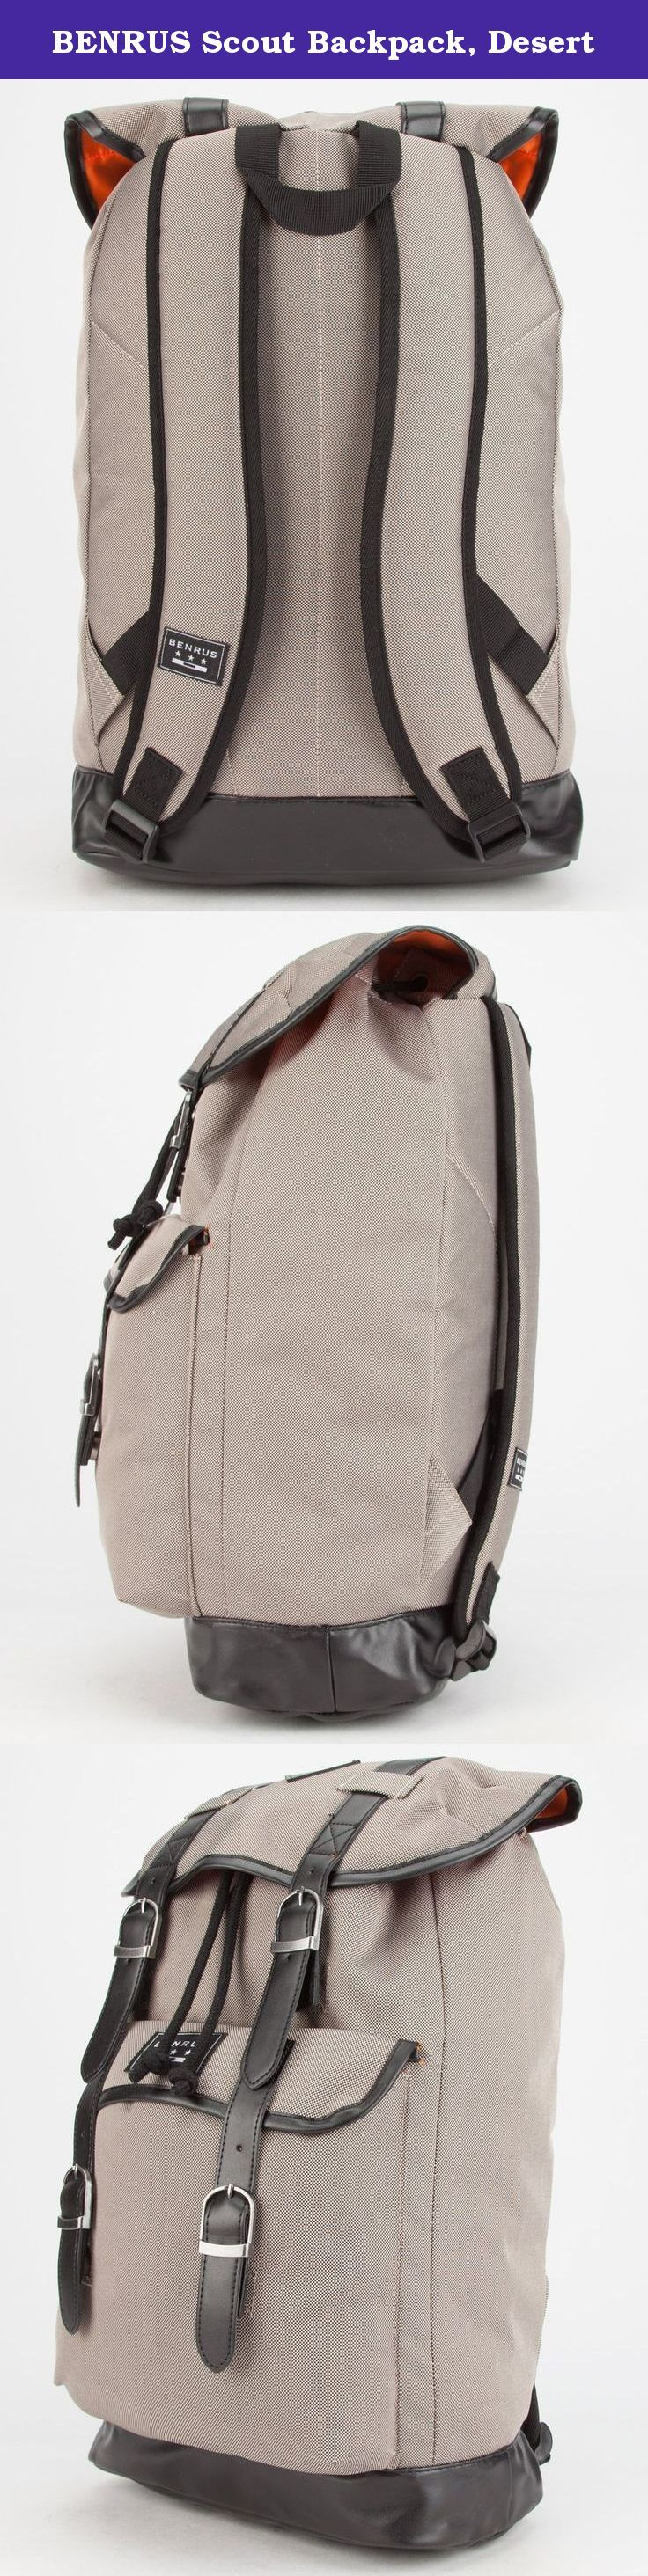 """BENRUS Scout Backpack, Desert. Benrus Scout rucksack style backpack. Drawstring main compartment with magnetic snap closure top flap. Interior hanging zip pocket. Magnetic snap flap pocket on front with decorative buckles. Faux leather detailing. Looped straps. Top handle loop. Padded back panel and shoulder straps. Fully lined. 600D Polyester. Approx dimensions: 18"""" x 12"""" x 6""""(46cm x 30cm x 15cm). Imported."""